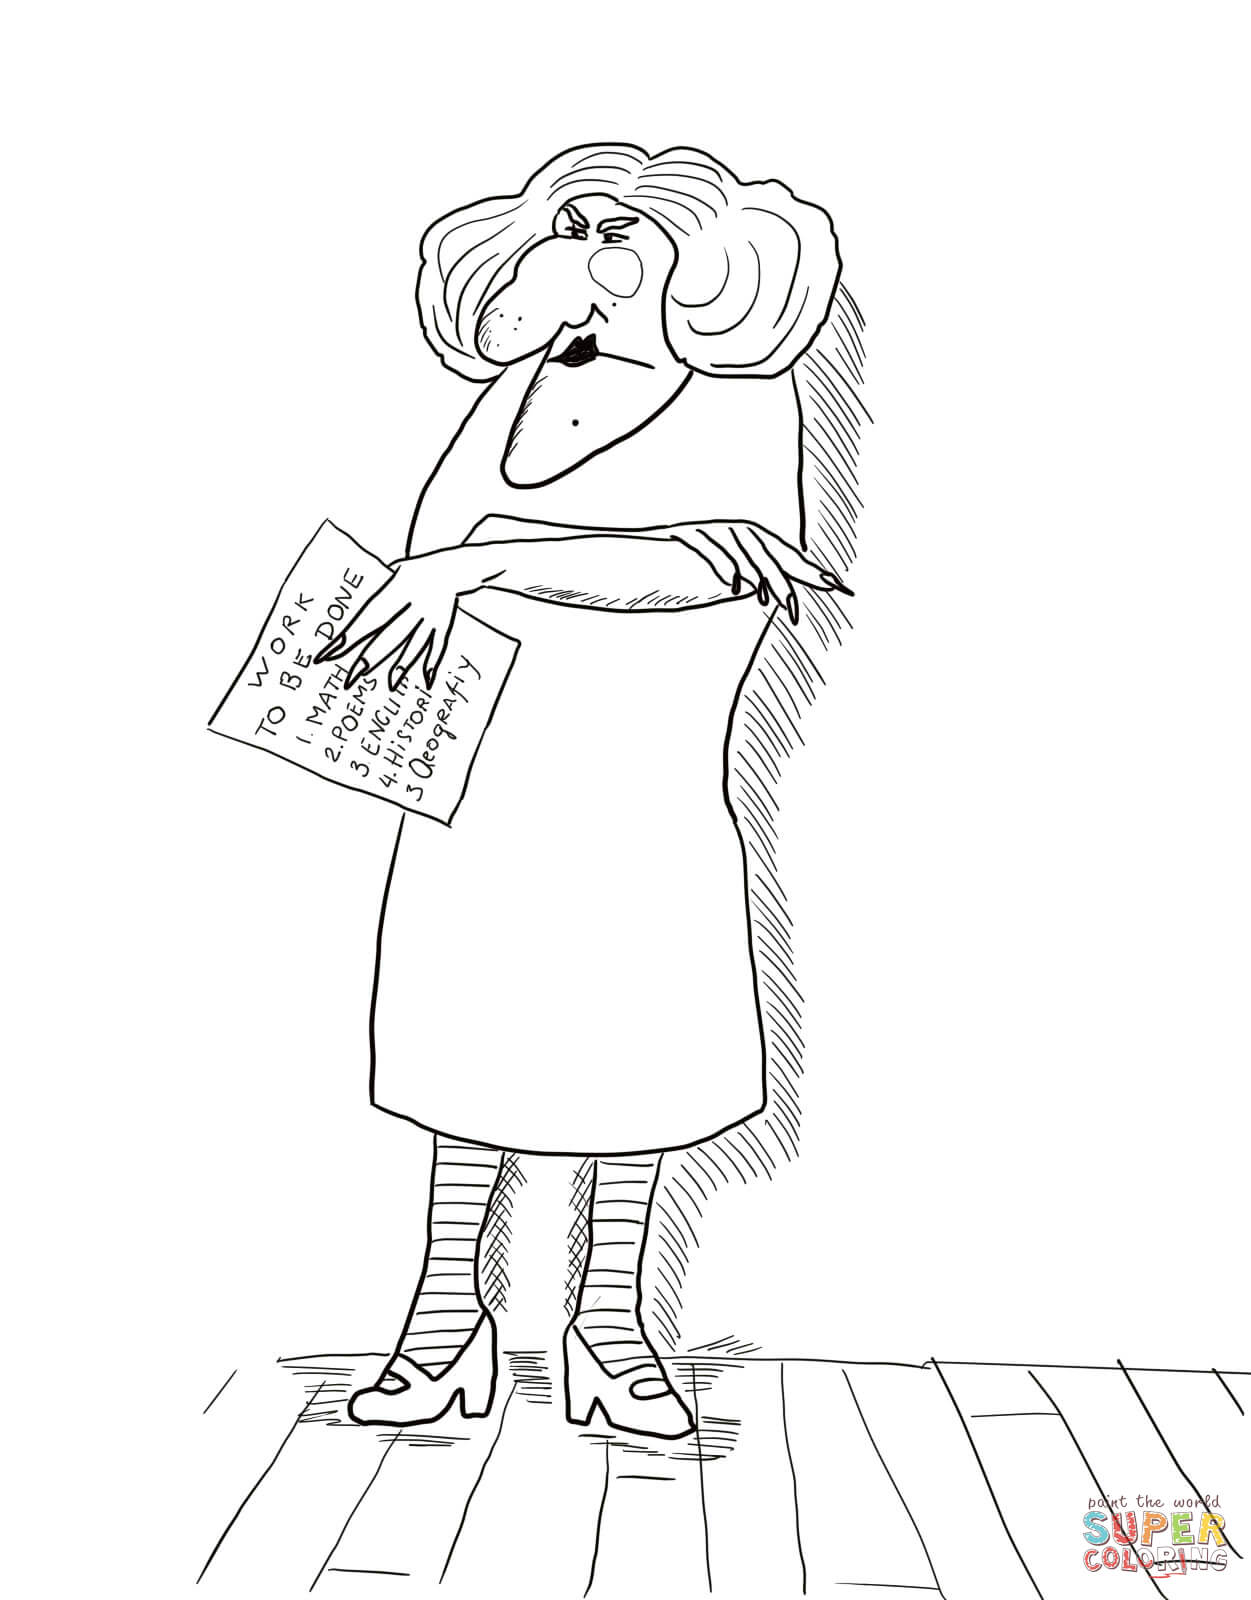 Miss Viola Swamp Coloring Page